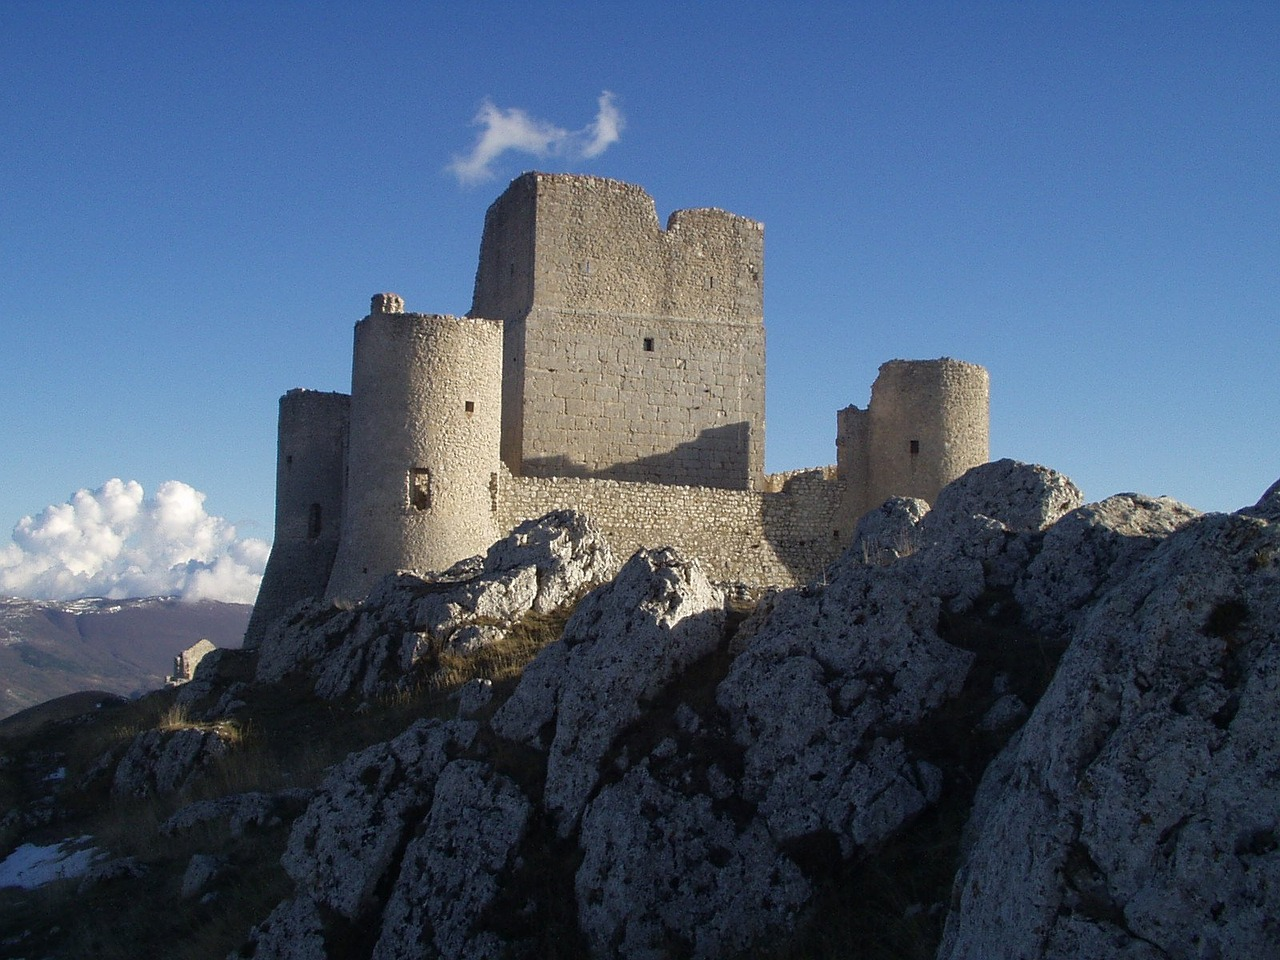 Castle with sunny blue sky in background.